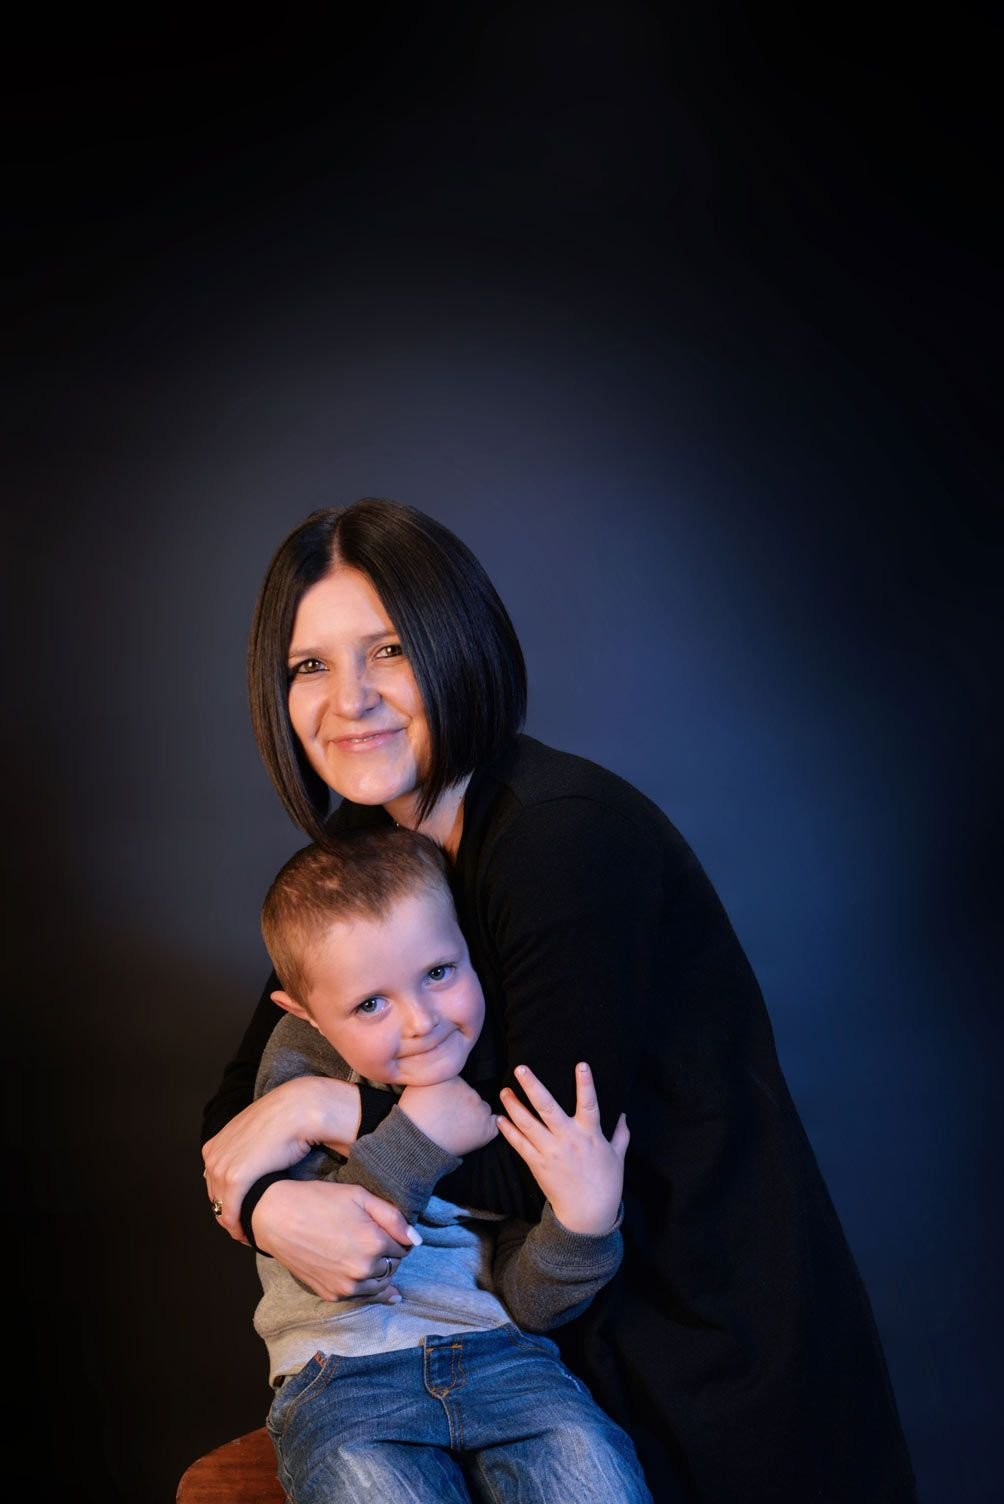 Studio family photographer Centurion